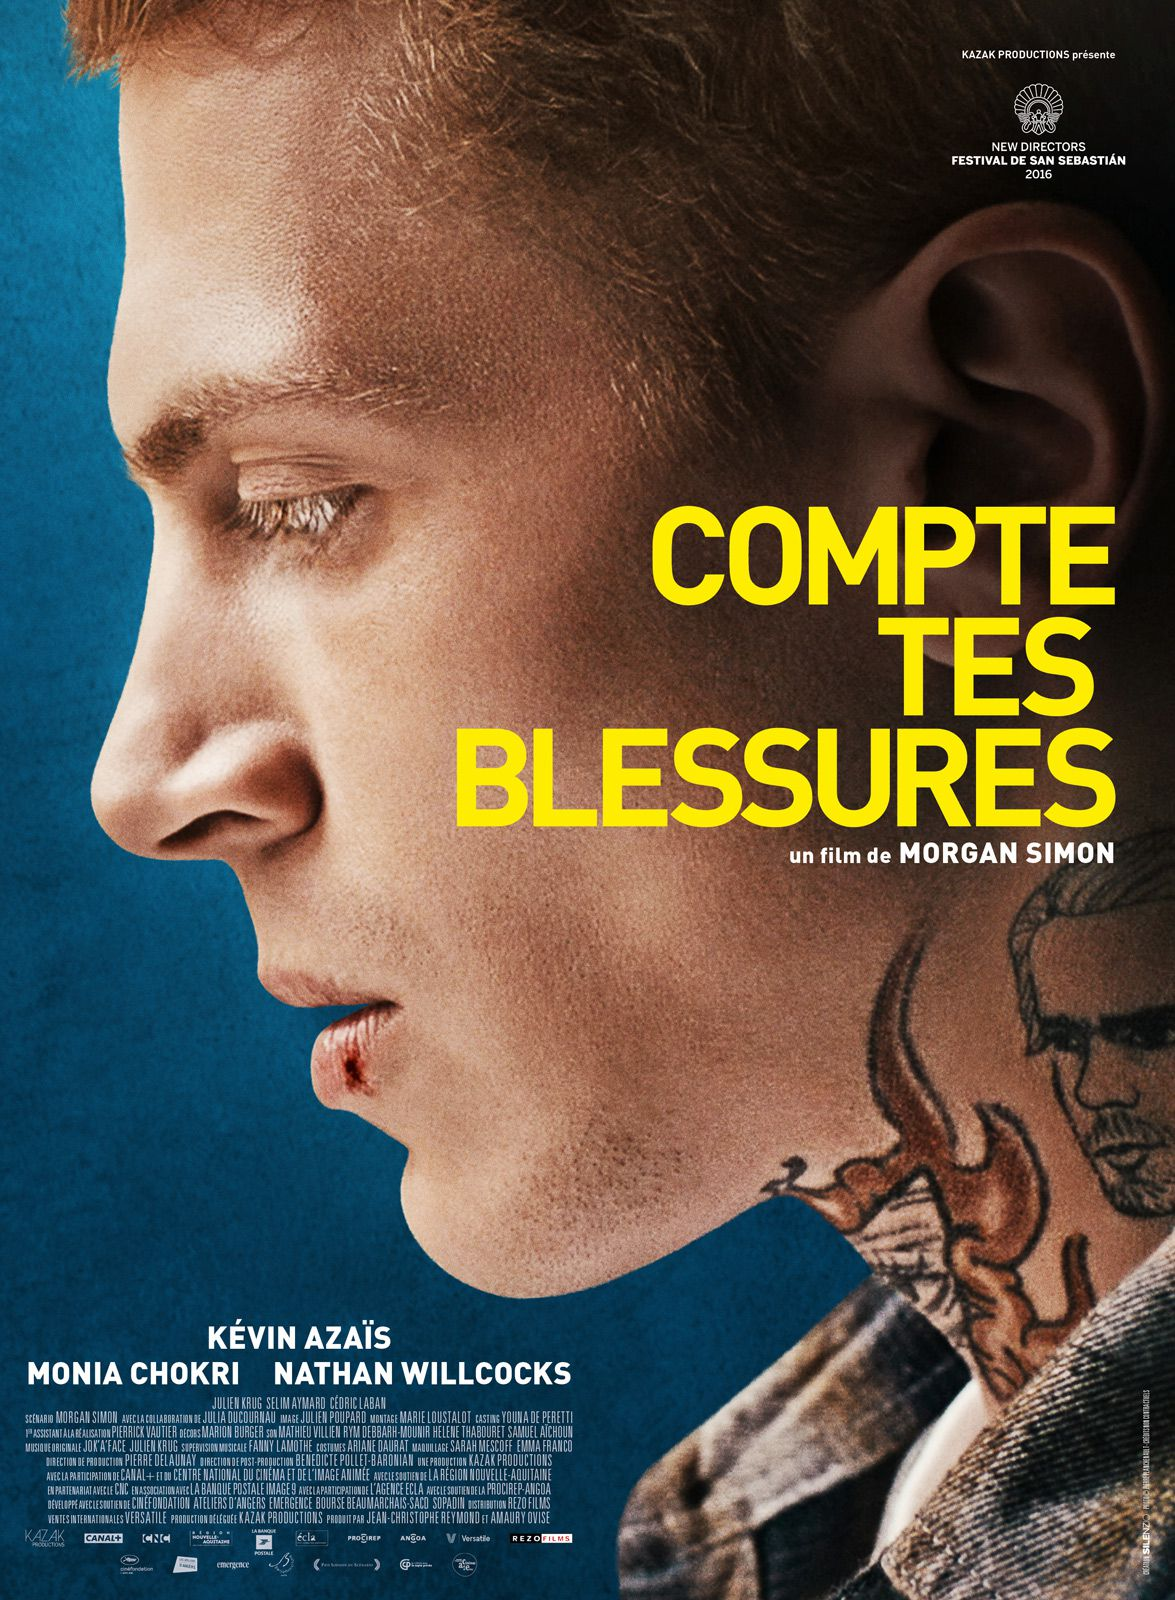 Compte tes blessures - Film (2017)